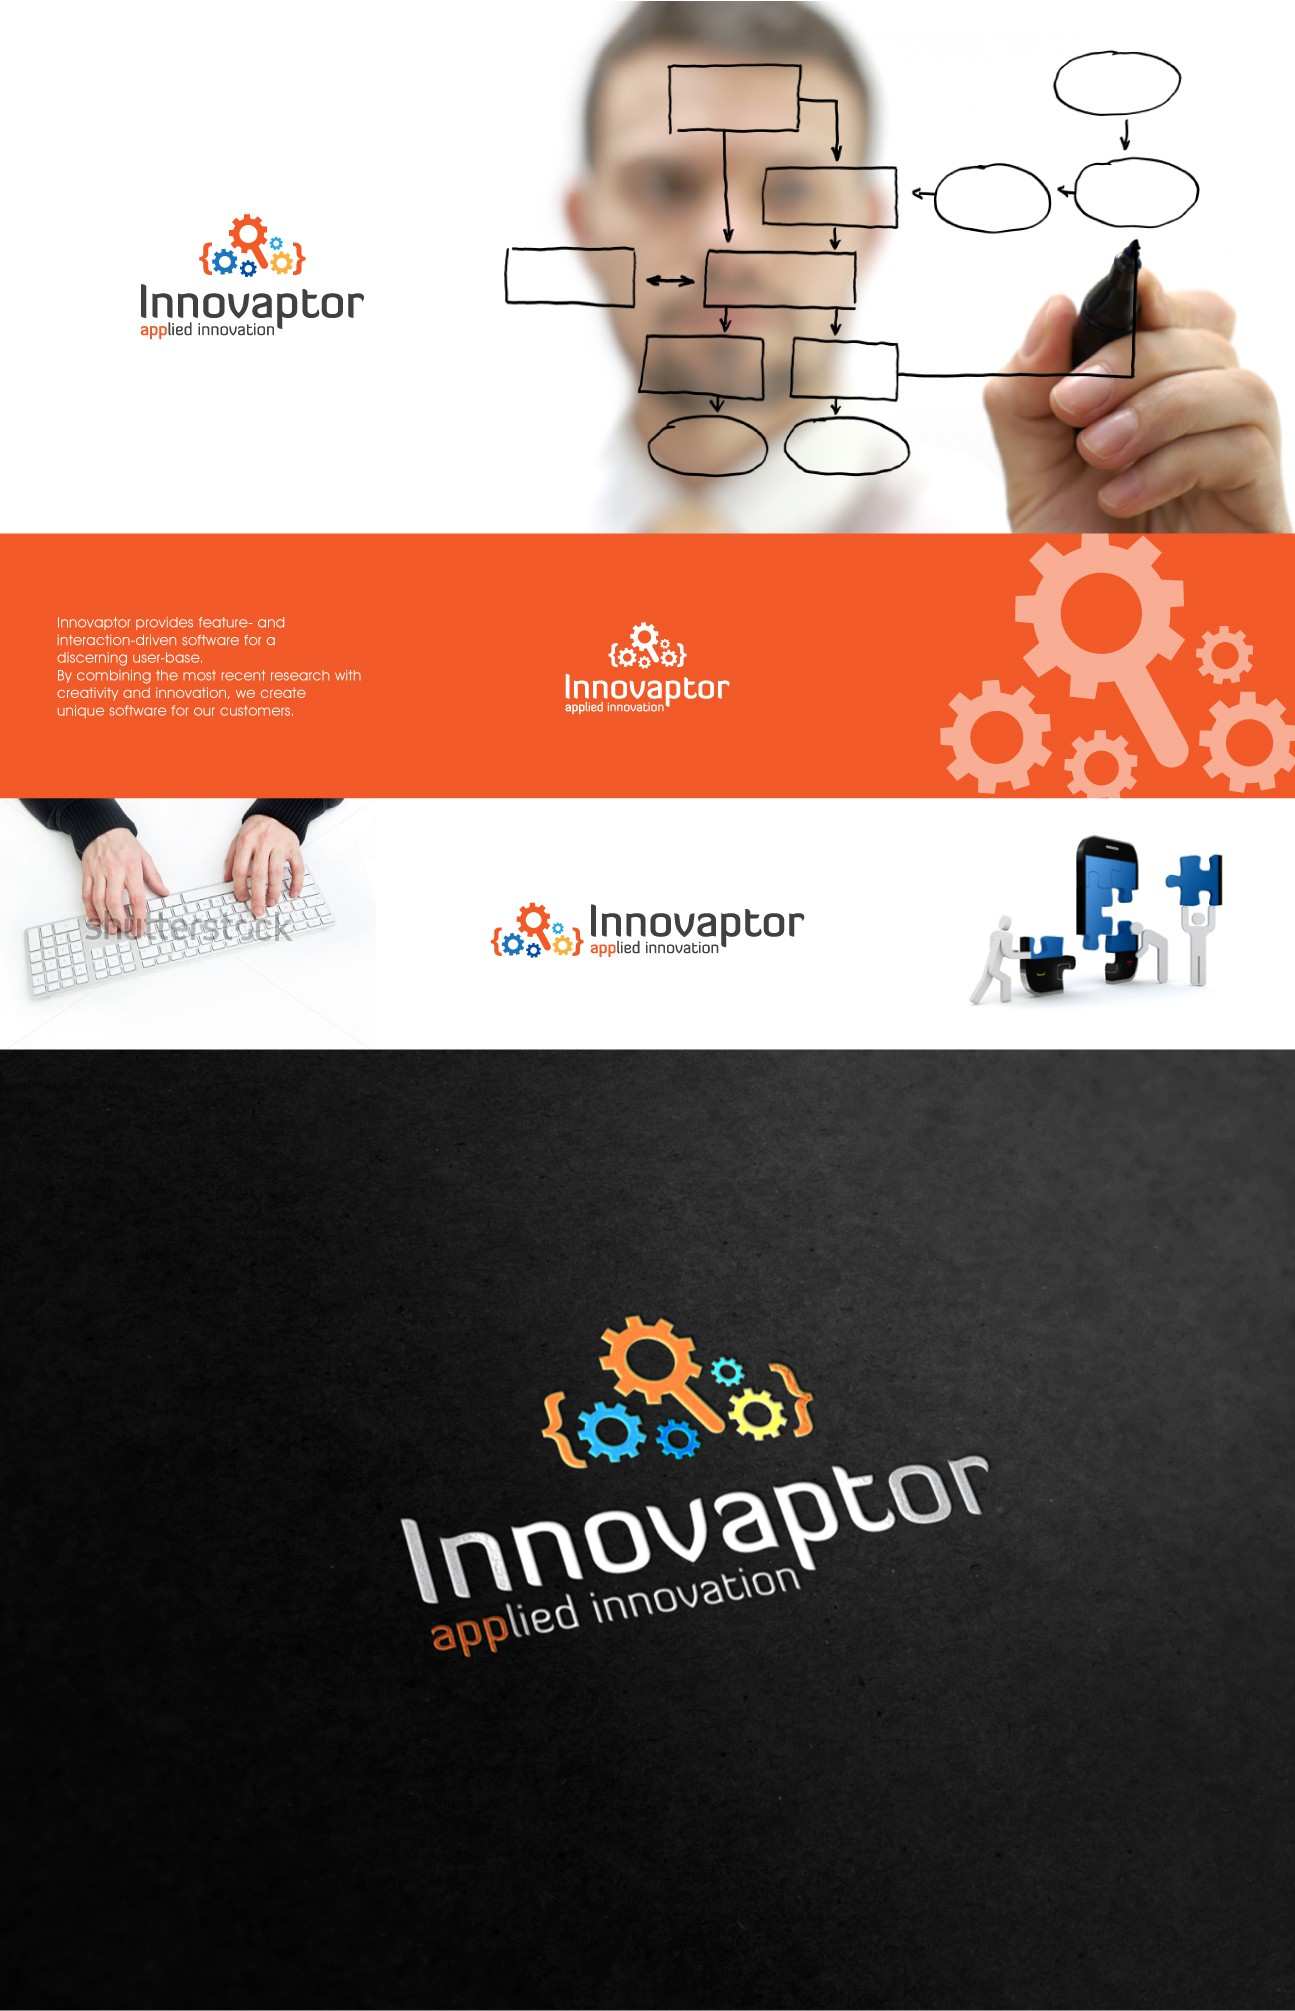 Impact Innovaptor's future with your logo!